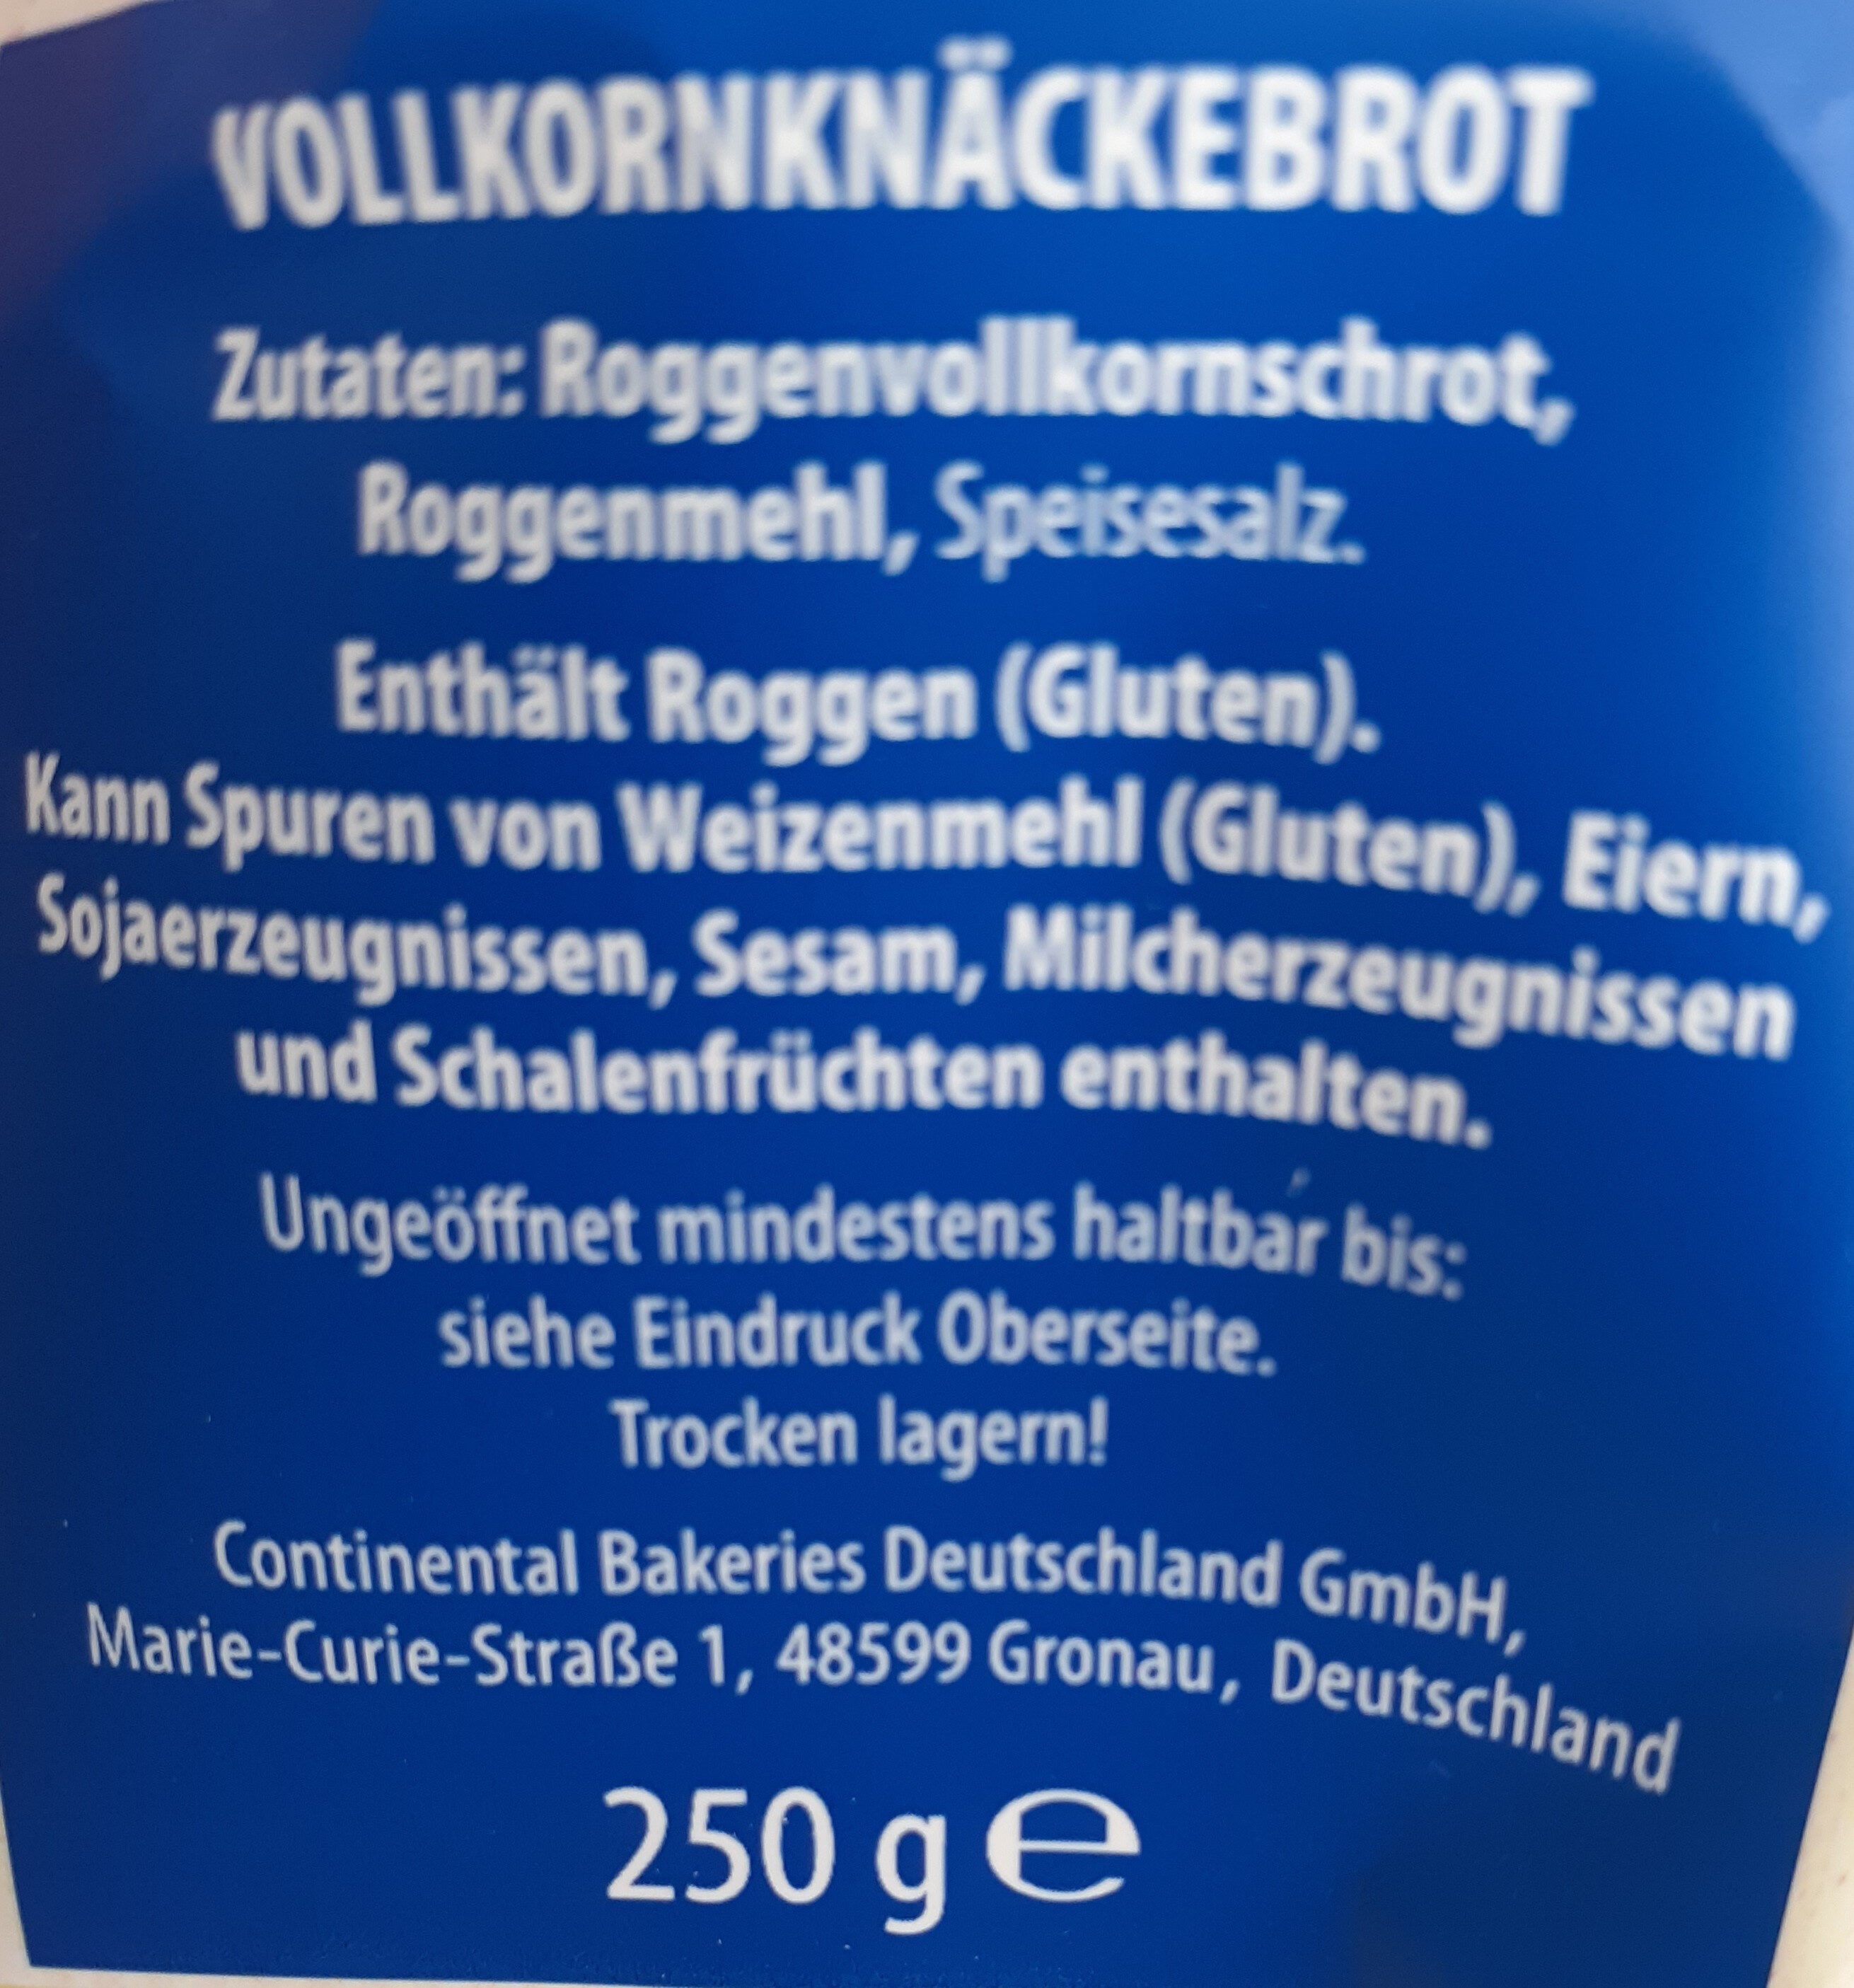 Knäckebrot - Ingredients - en